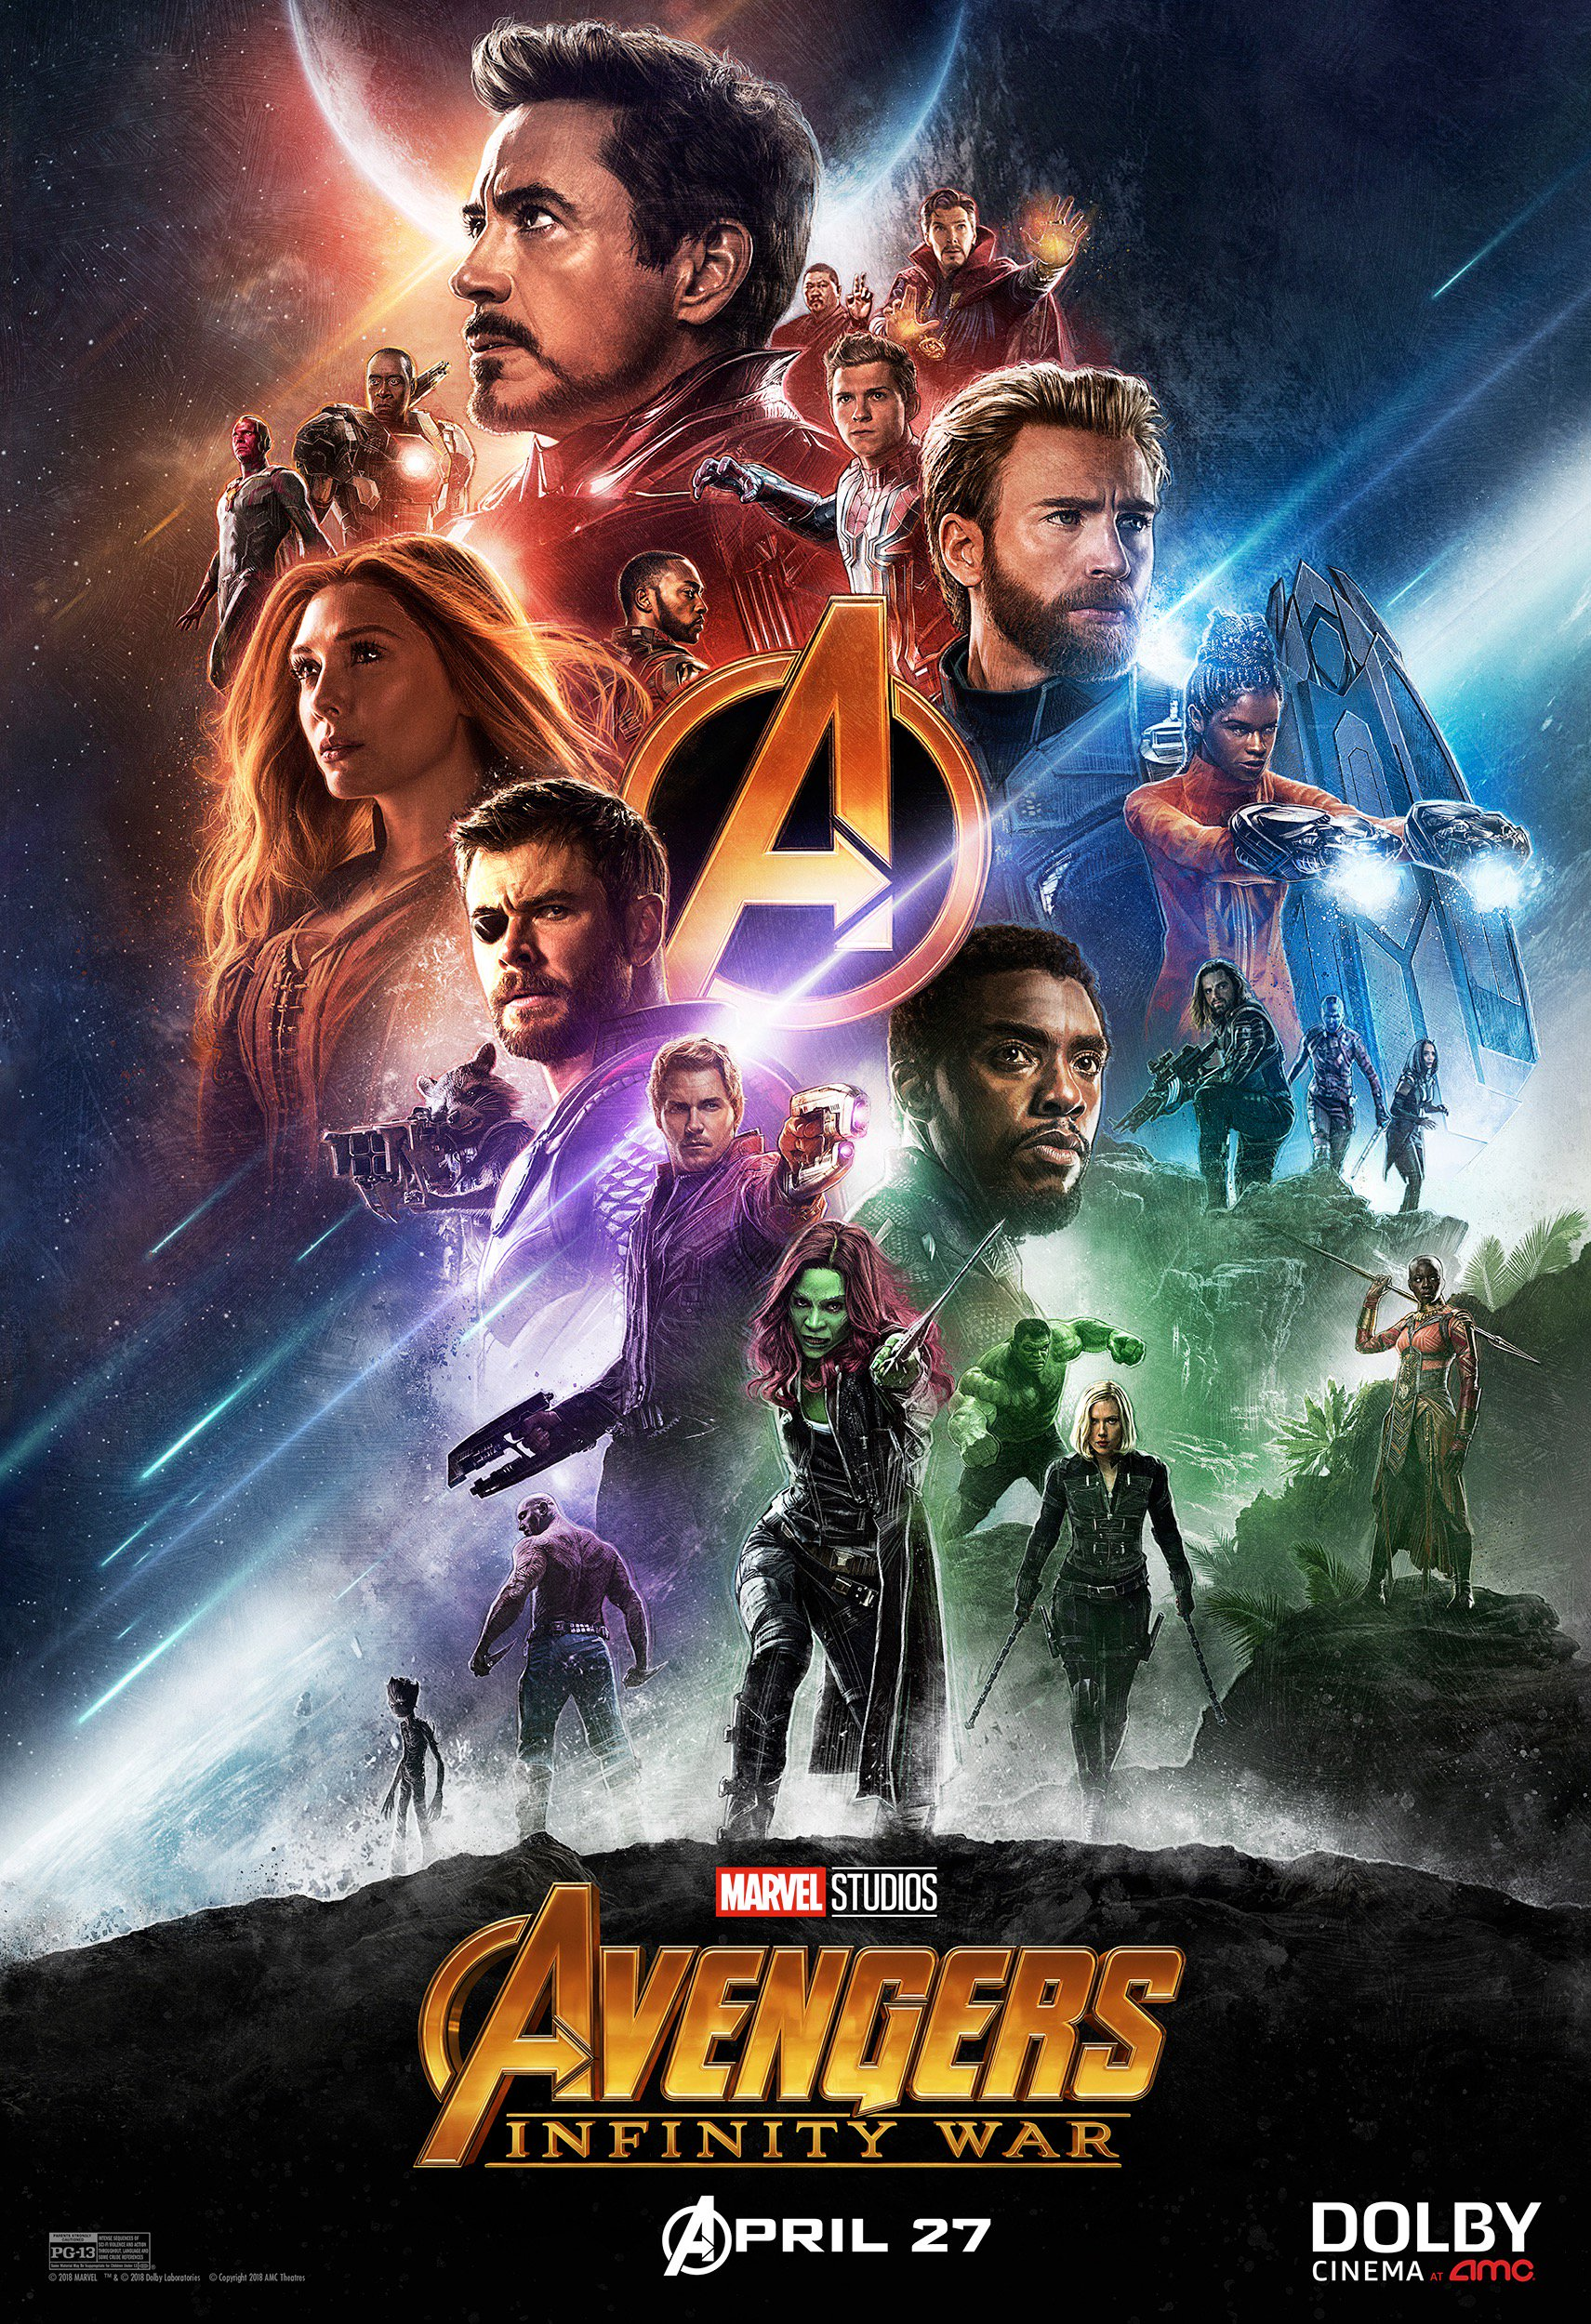 avengers infinity war poster dolby